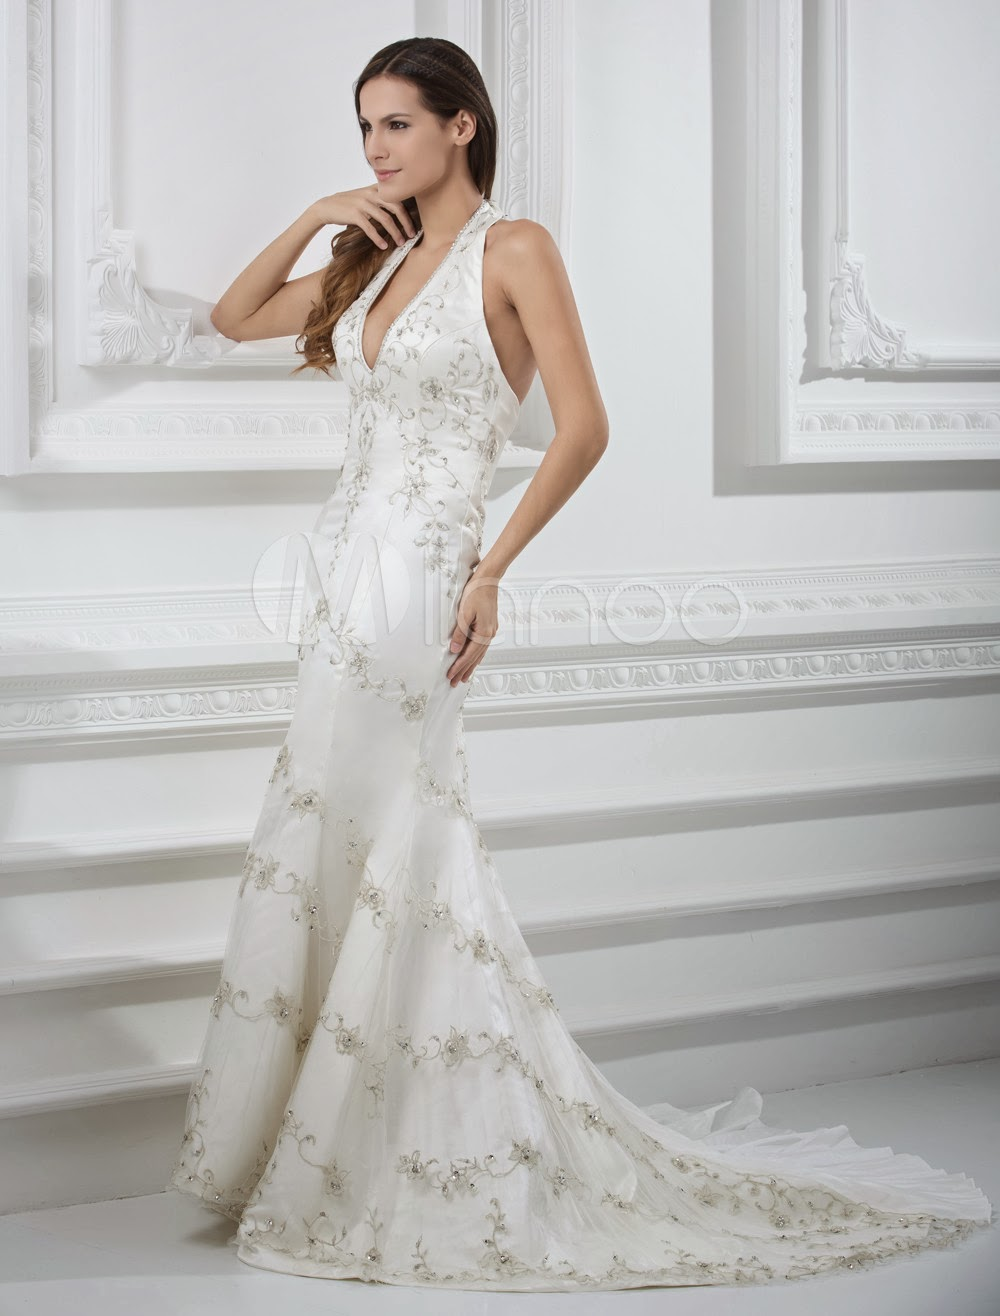 China Wholesale Dresses - Glamorous Ivory Beading V-Neck Sleeveless Mermaid Wedding Dress For Bride